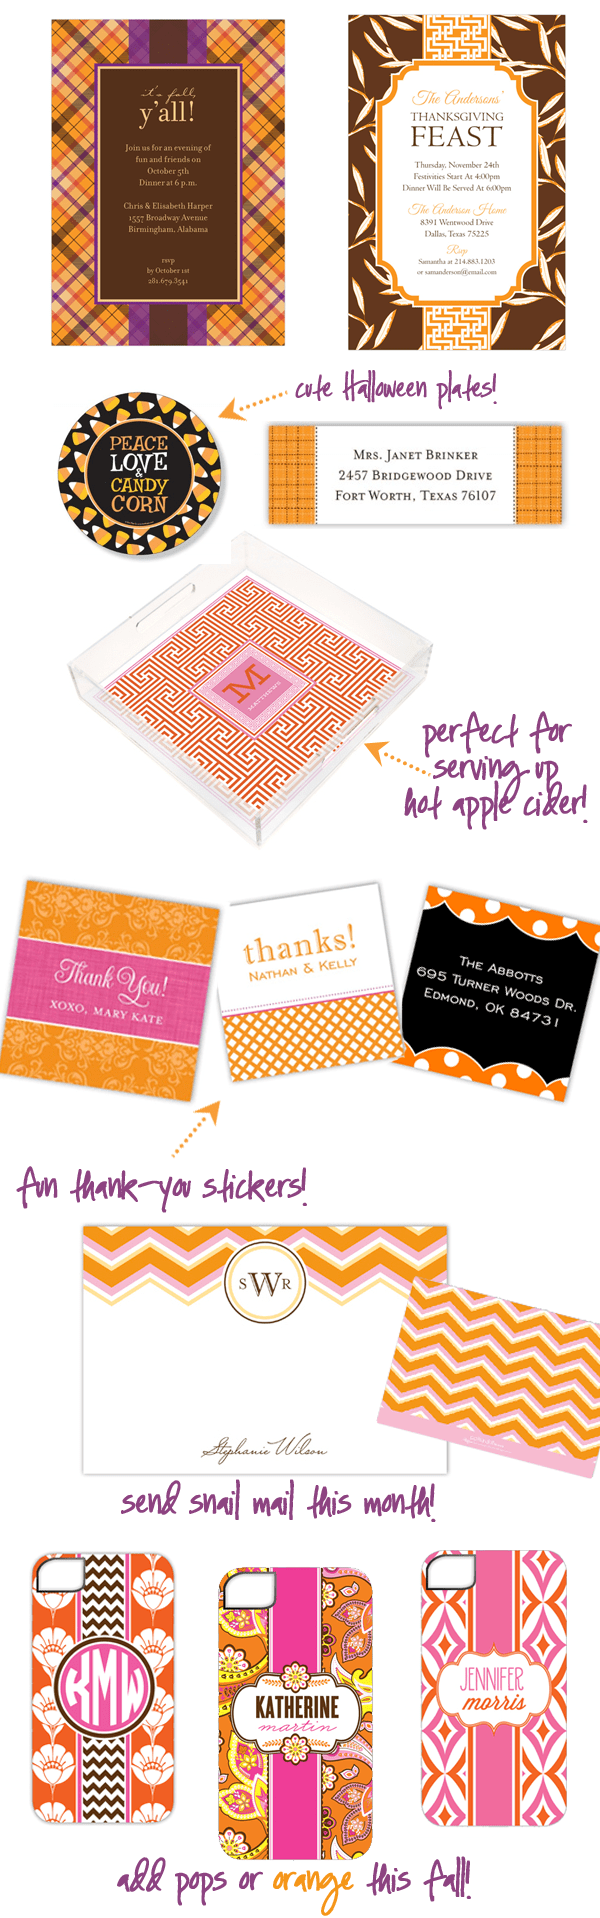 Fall Invitations, Stationery, + cute gifts